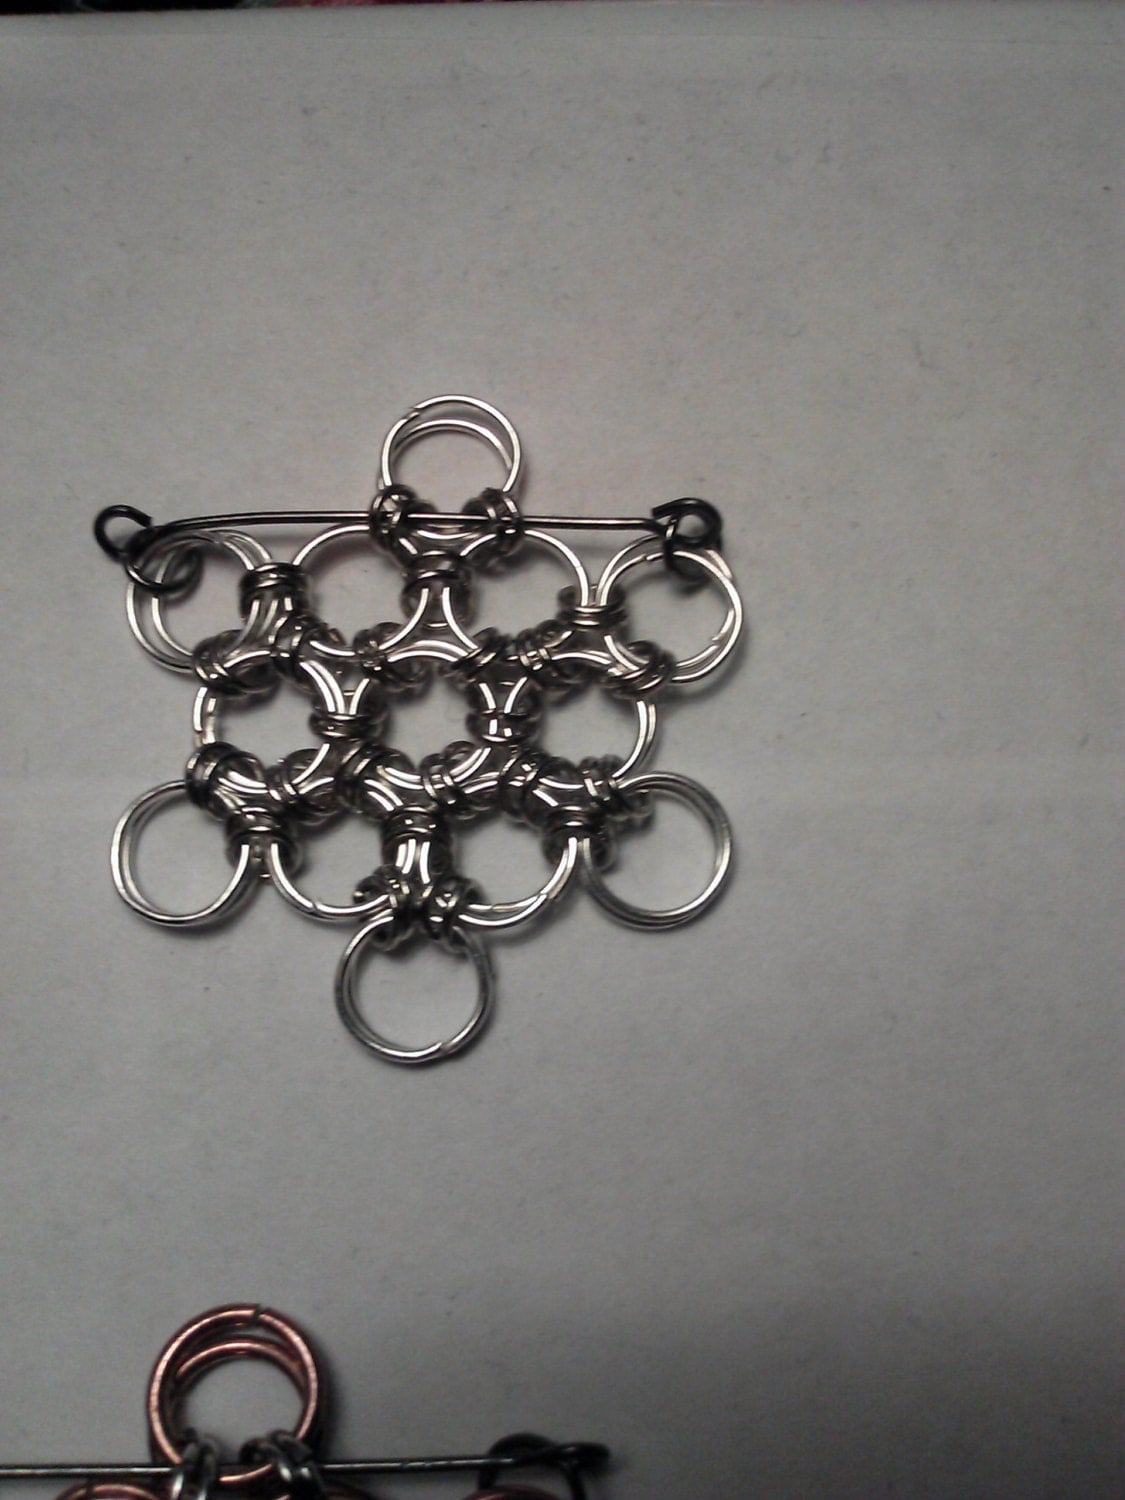 Chainmail Snowflakes Christmas Ornaments Made To Order Buy 1 for 8.00, 3 for 21.00, 8 for 48.00, or 12 for 84.00 Choose your colors